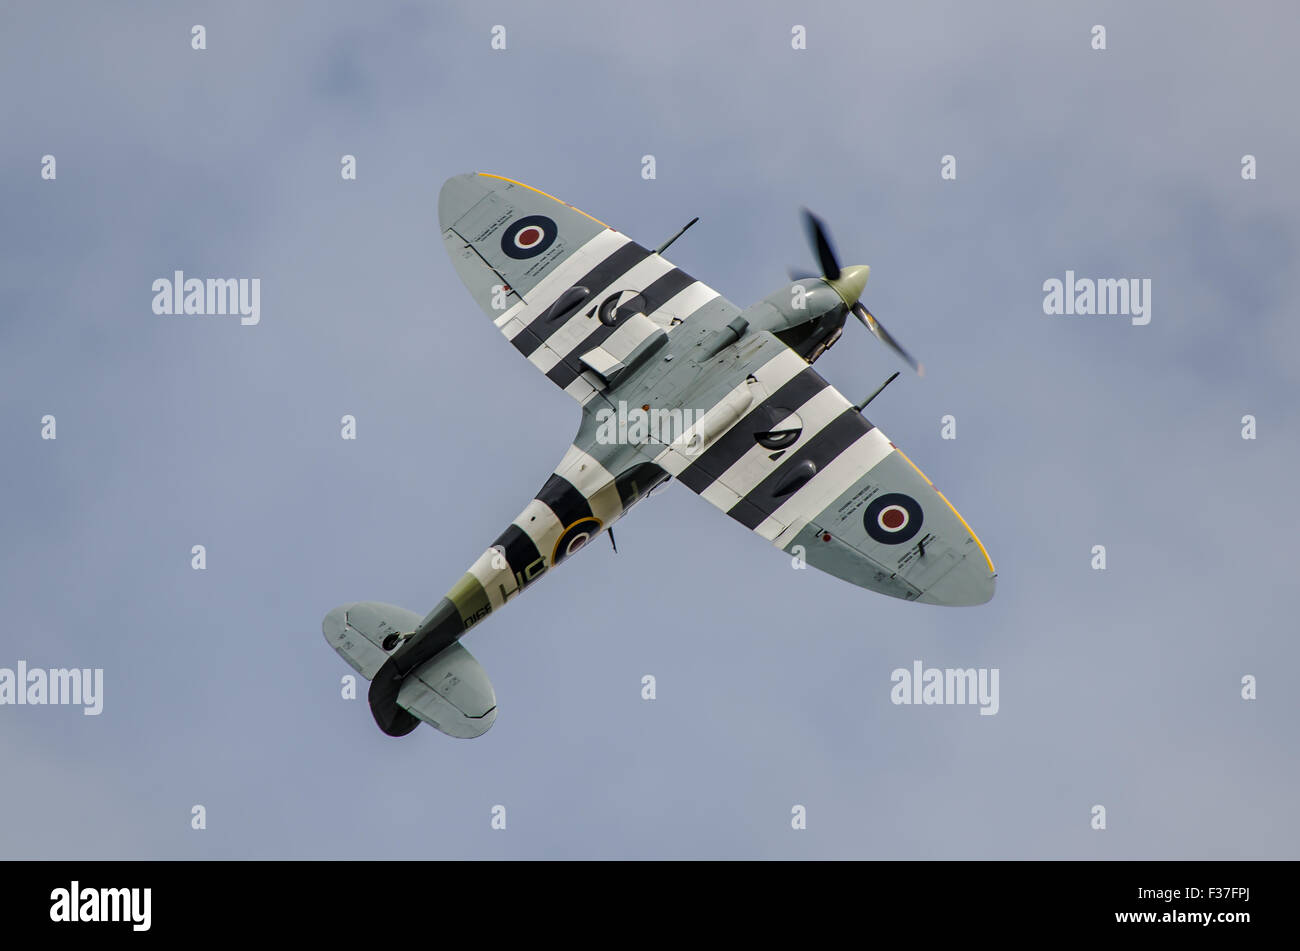 spitfire-of-the-battle-of-britain-memorial-flight-carrying-out-a-victory-F37FPJ.jpg